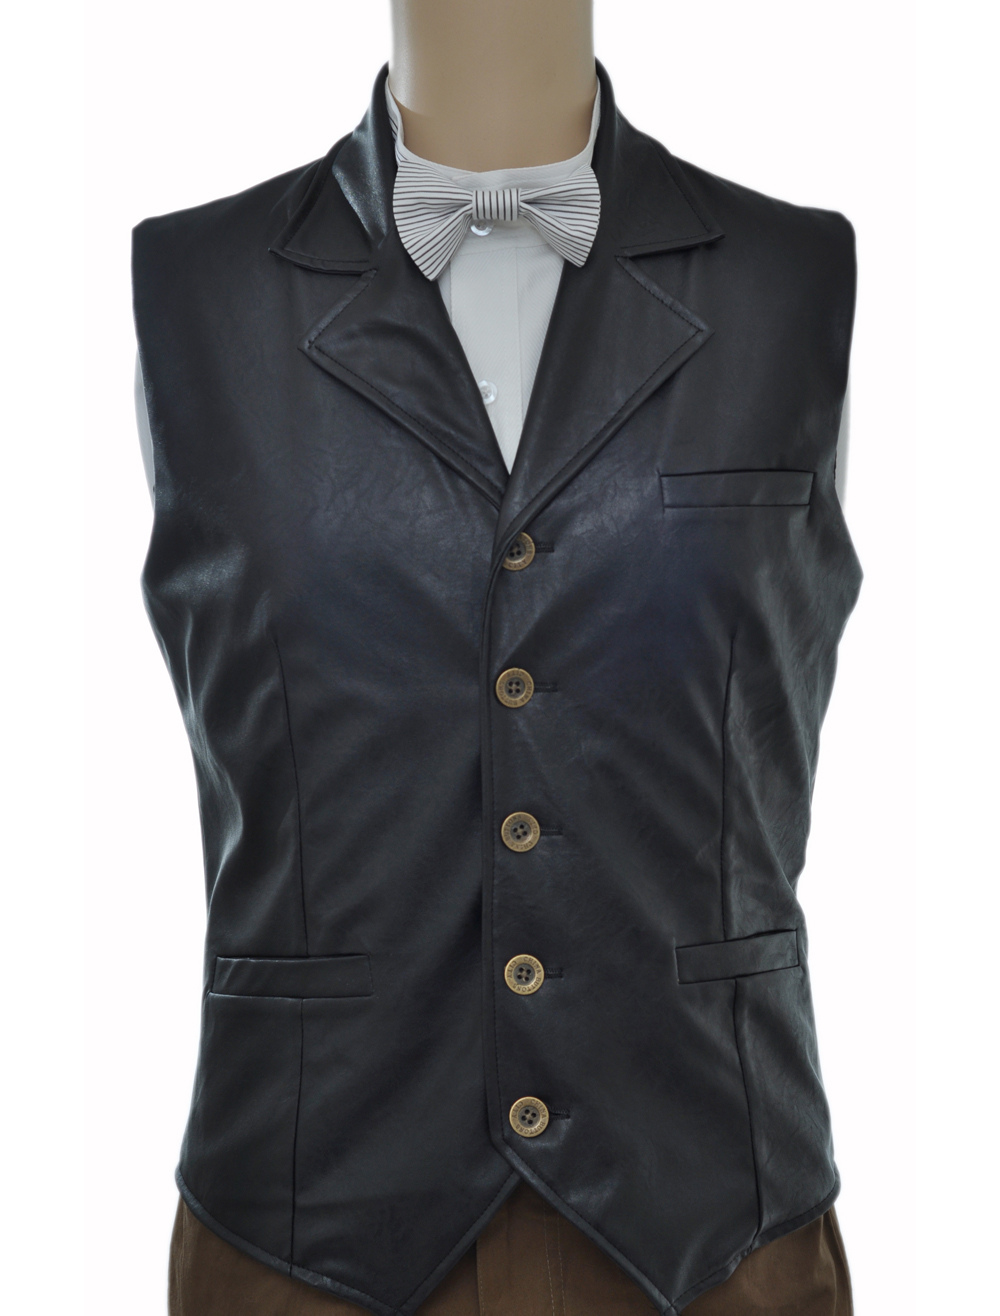 Buy Vintage Steampunk Costume Waistcoat Black Men's Faux Leather Retro Suit Vest Halloween for $59.99 in Milanoo store